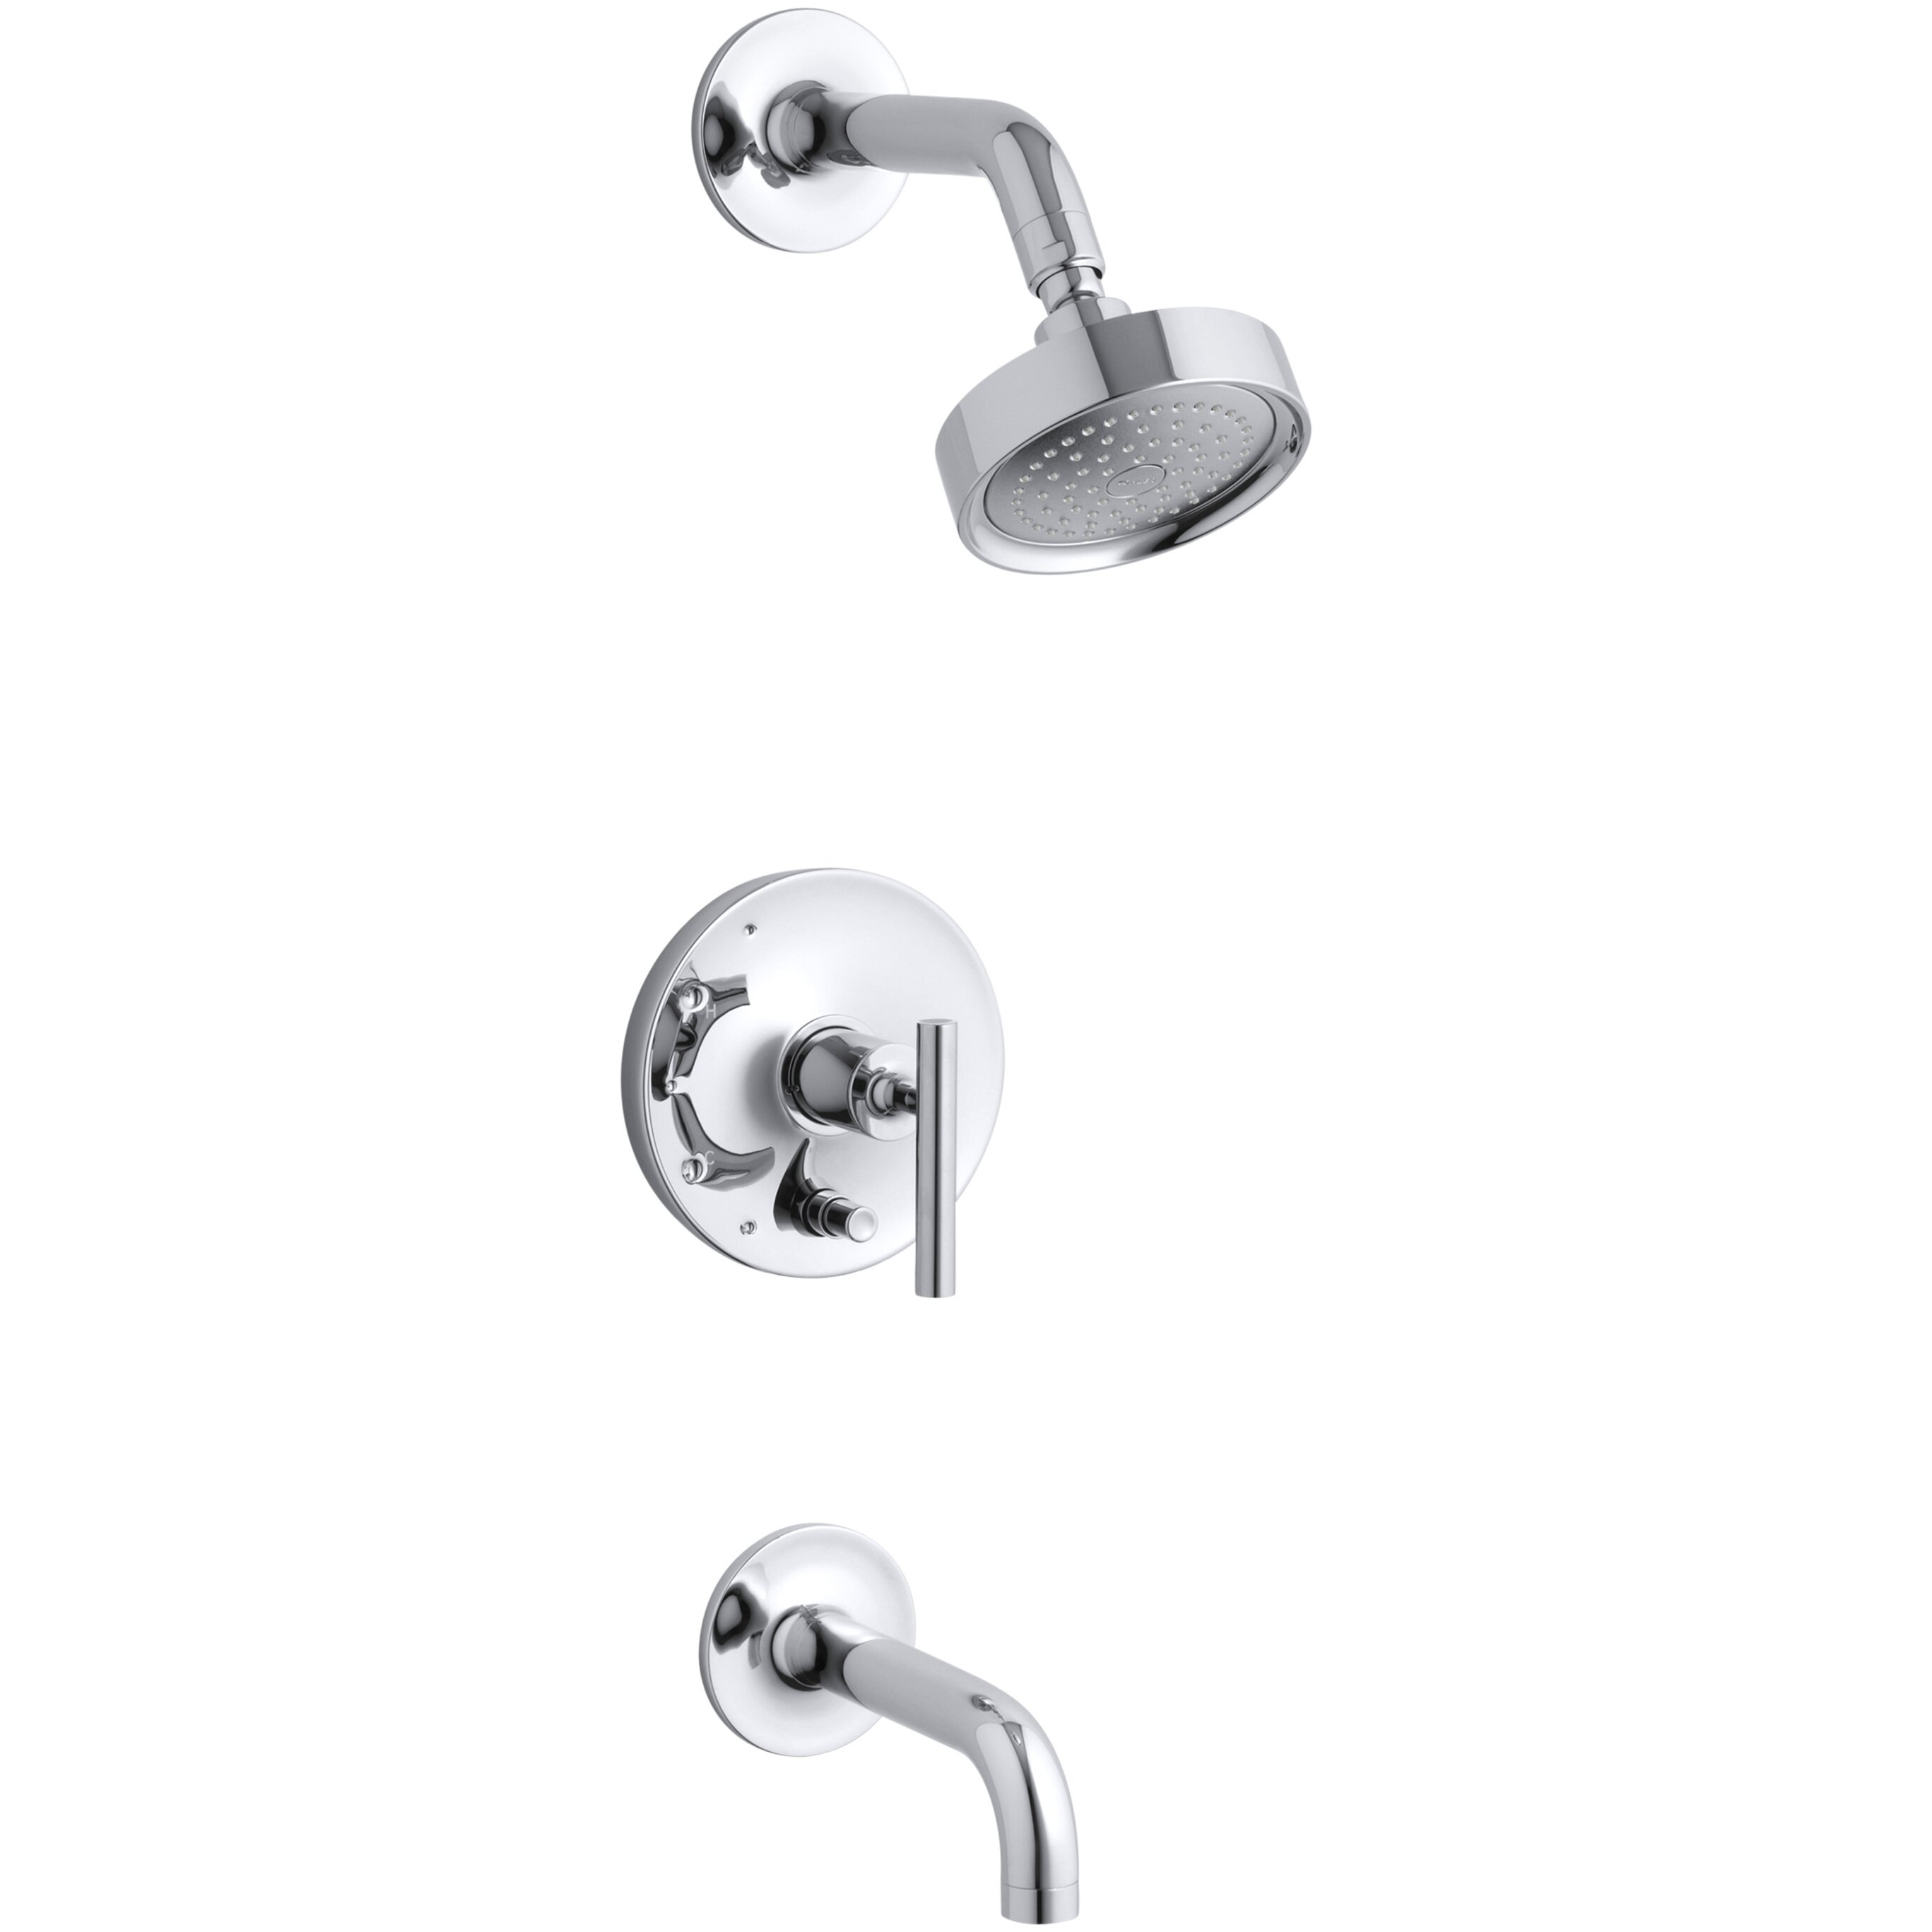 Kohler Purist Rite-Temp Pressure-Balancing Bath and Shower Faucet ... - Kohler Purist Rite-Temp Pressure-Balancing Bath and Shower Faucet Trim with  Push-